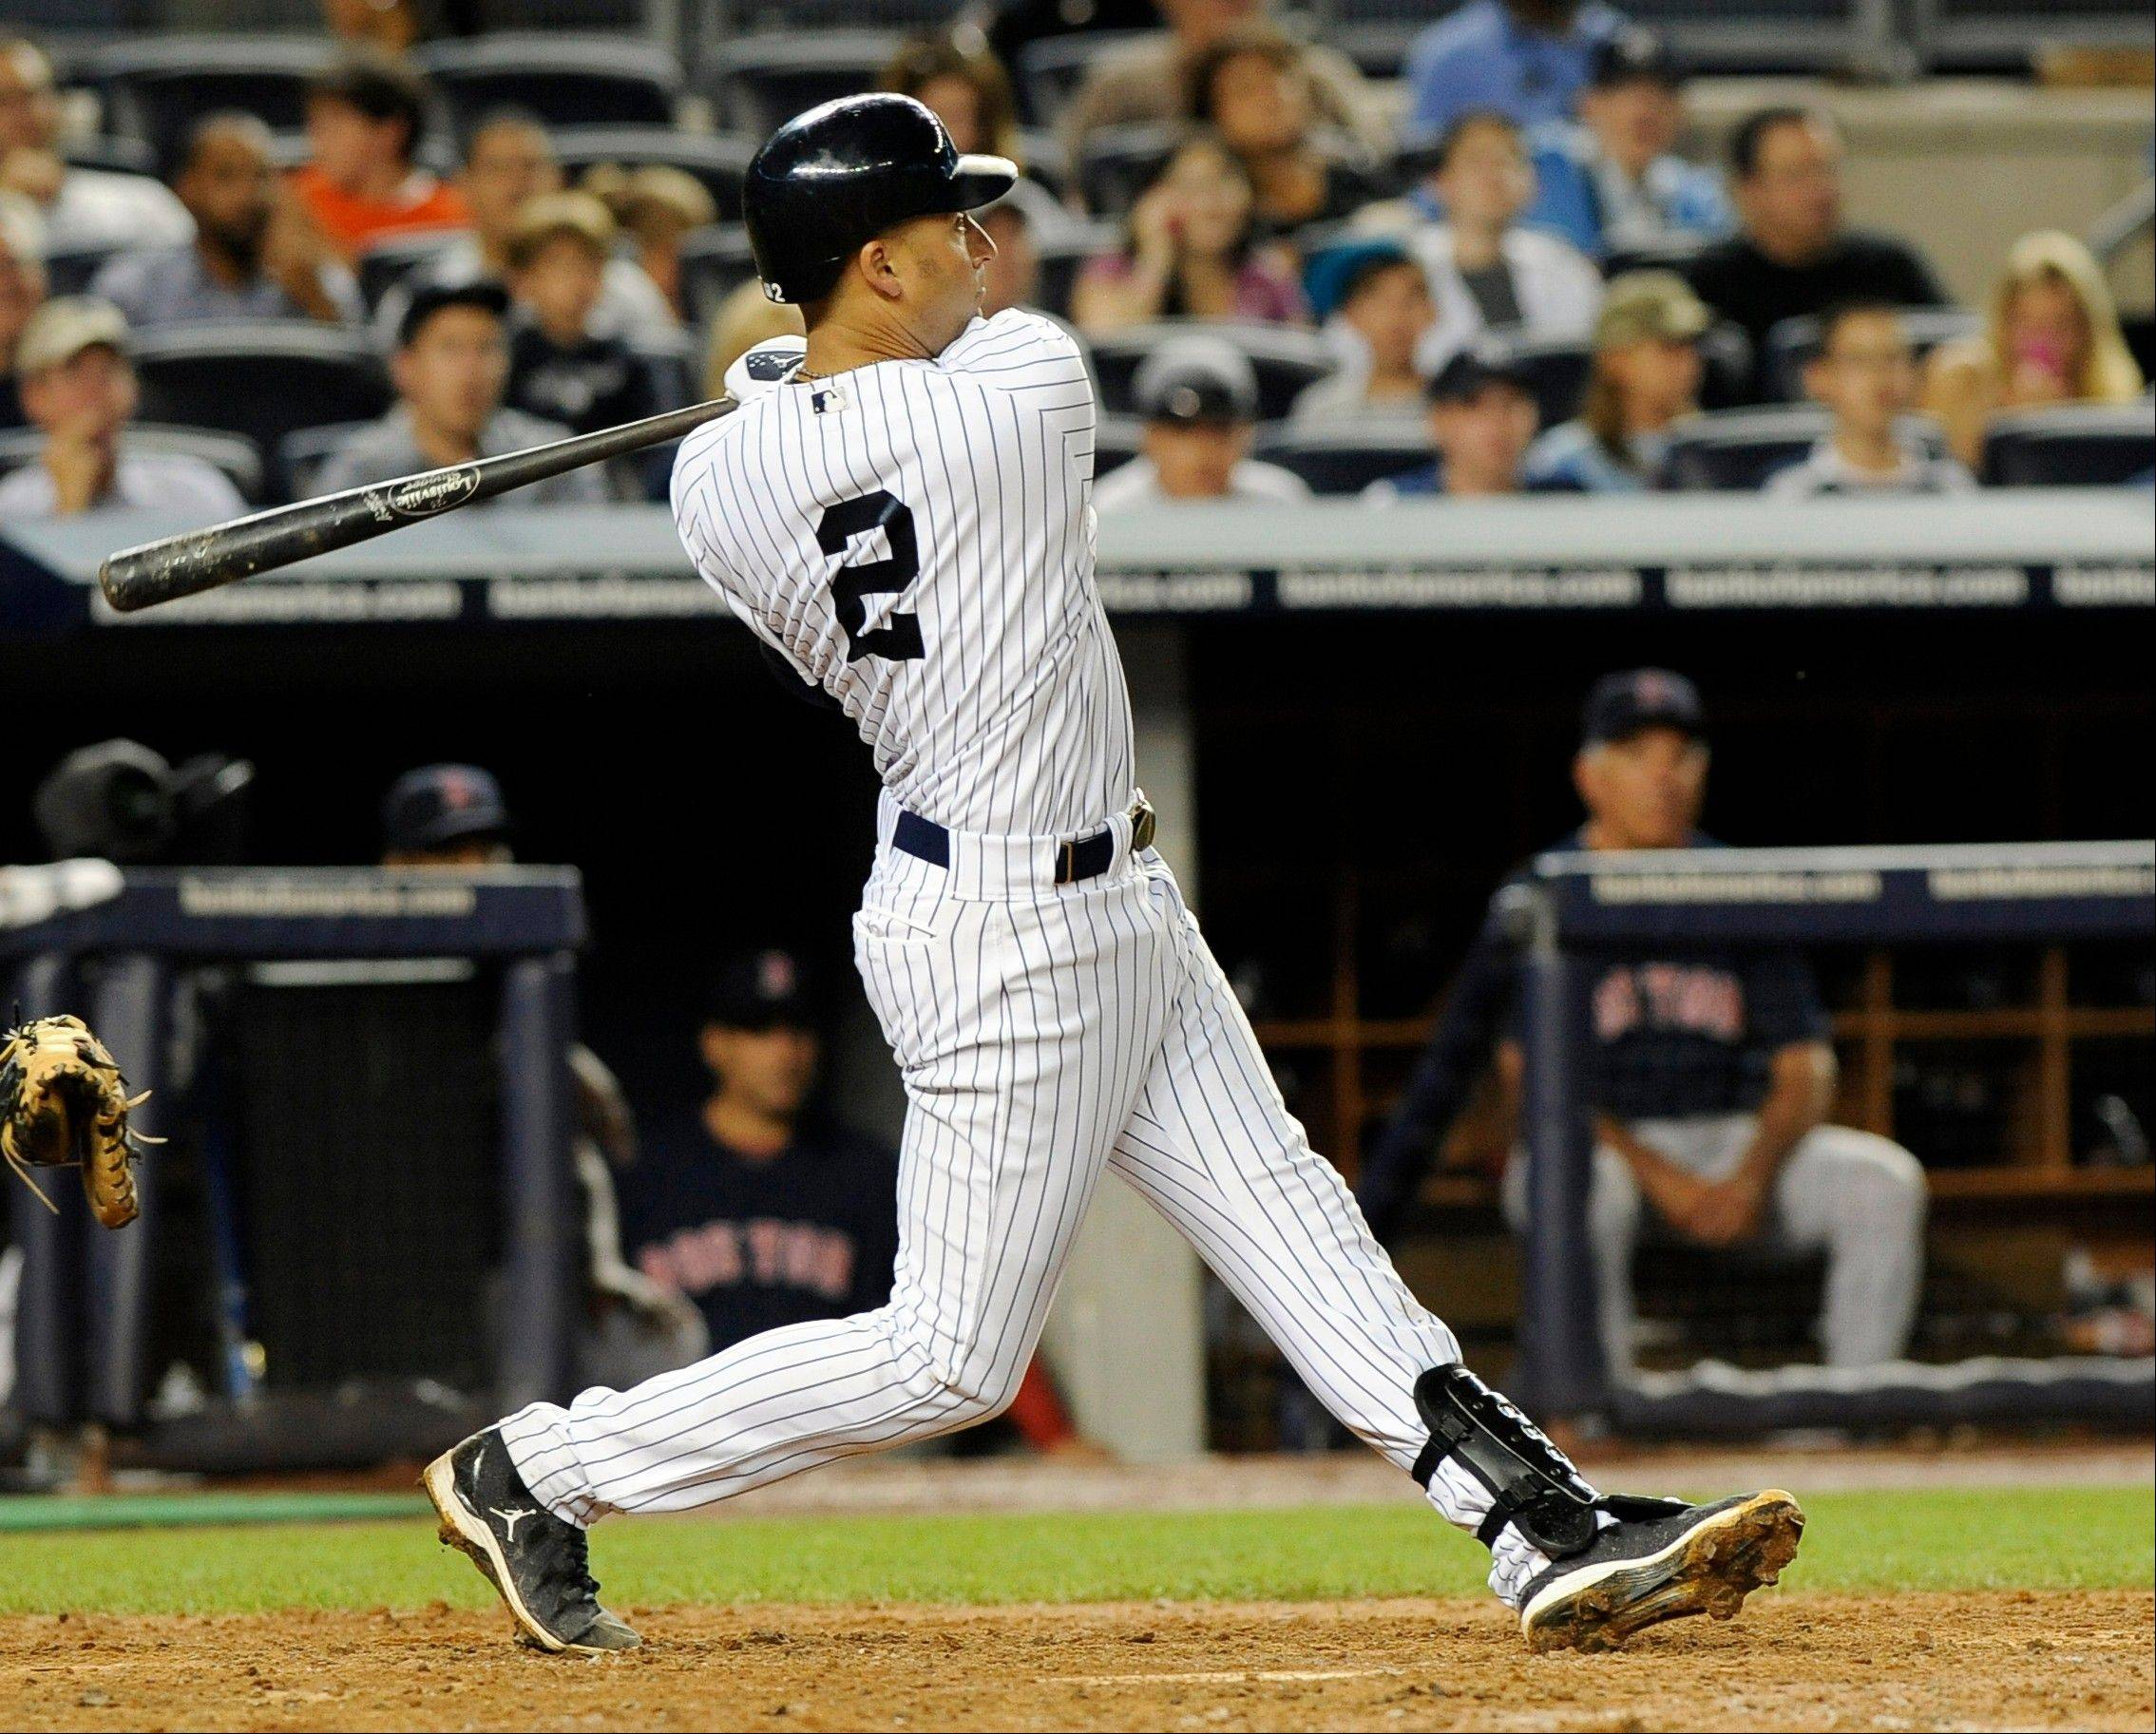 The Yankees' Derek Jeter hits a solo home run off Boston's Franklin Morales in the fifth inning Friday in New York.